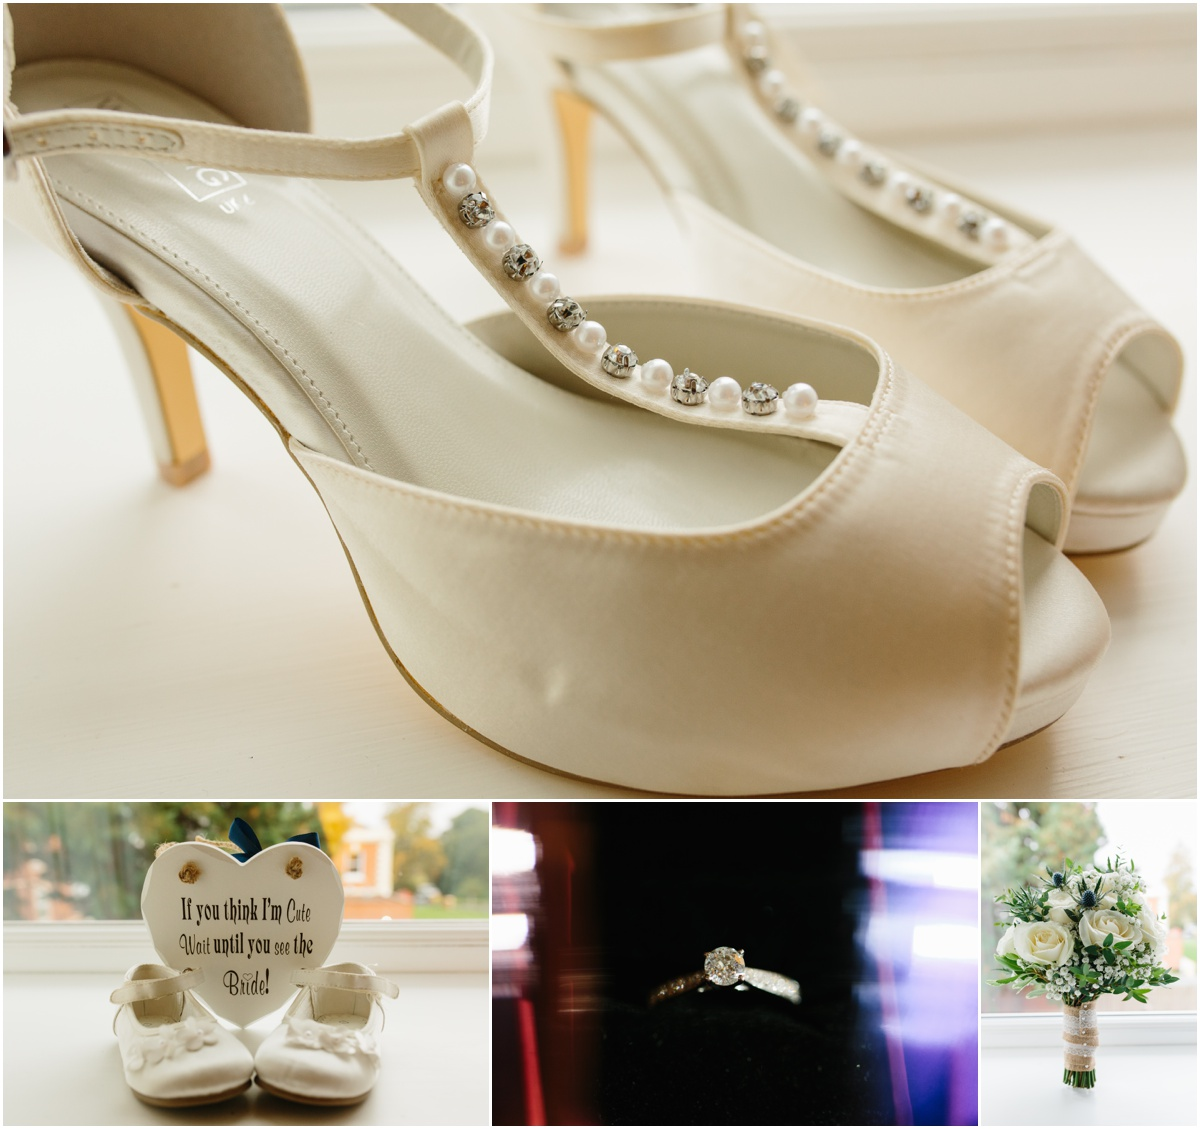 Wedding shoes at the wedding venue